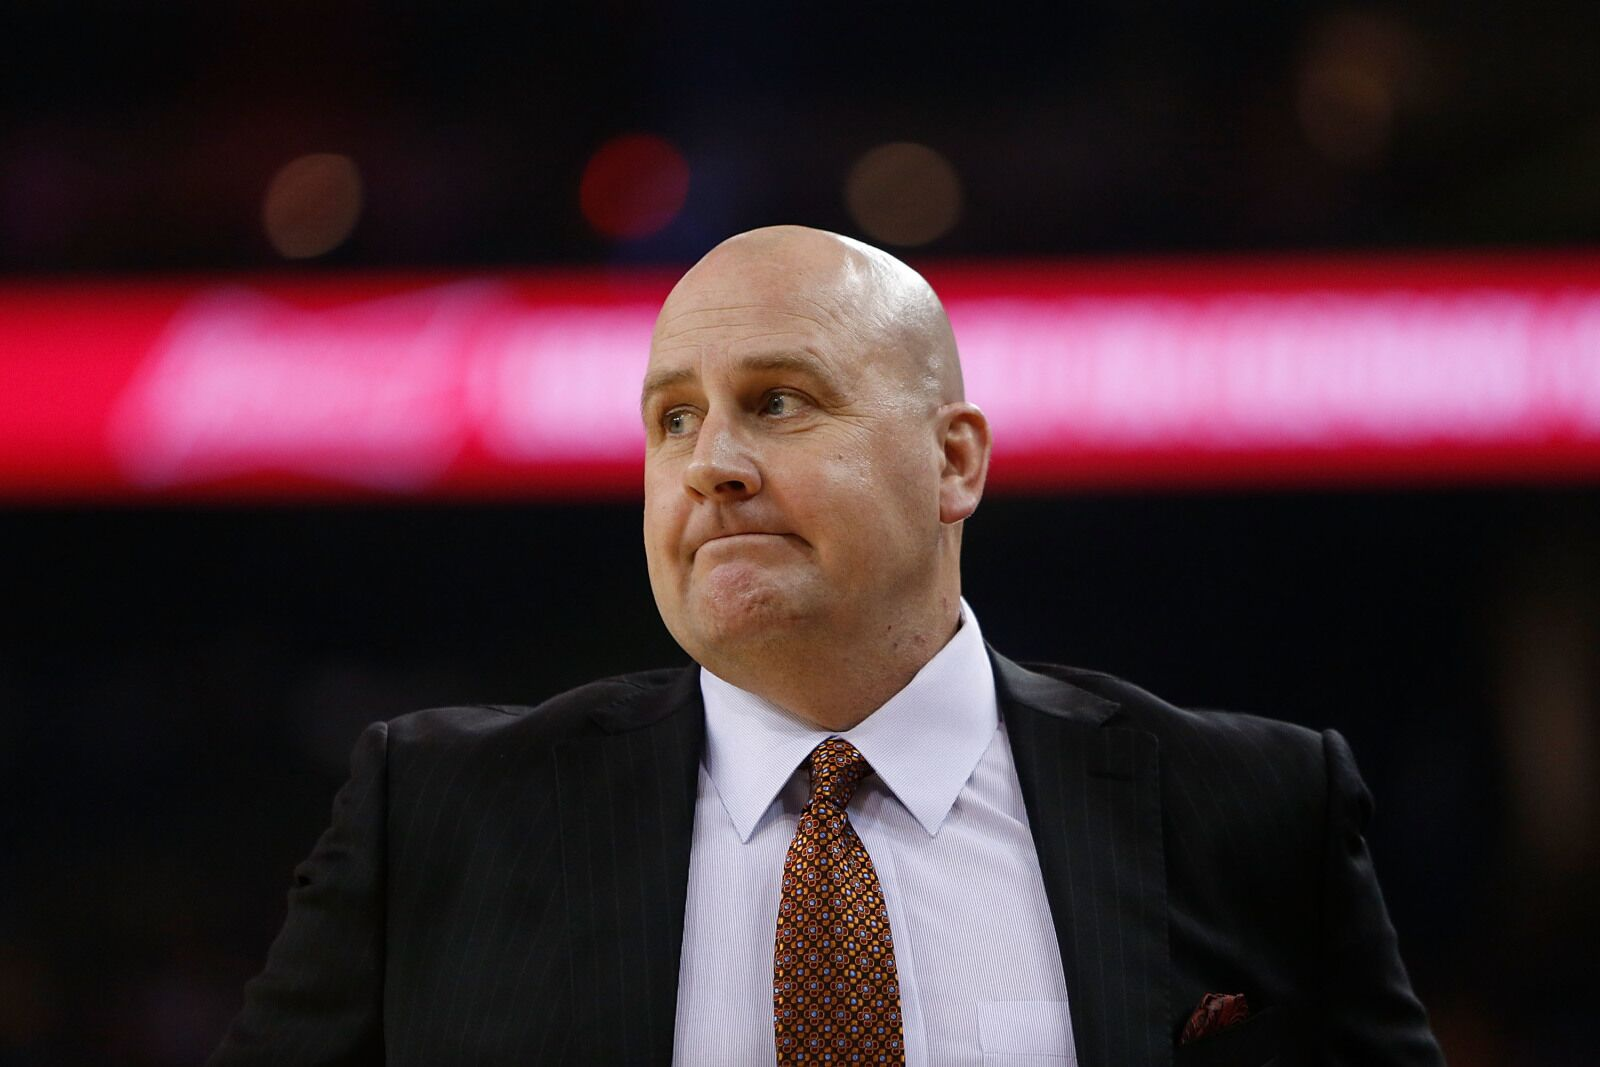 jim boylen - photo #11